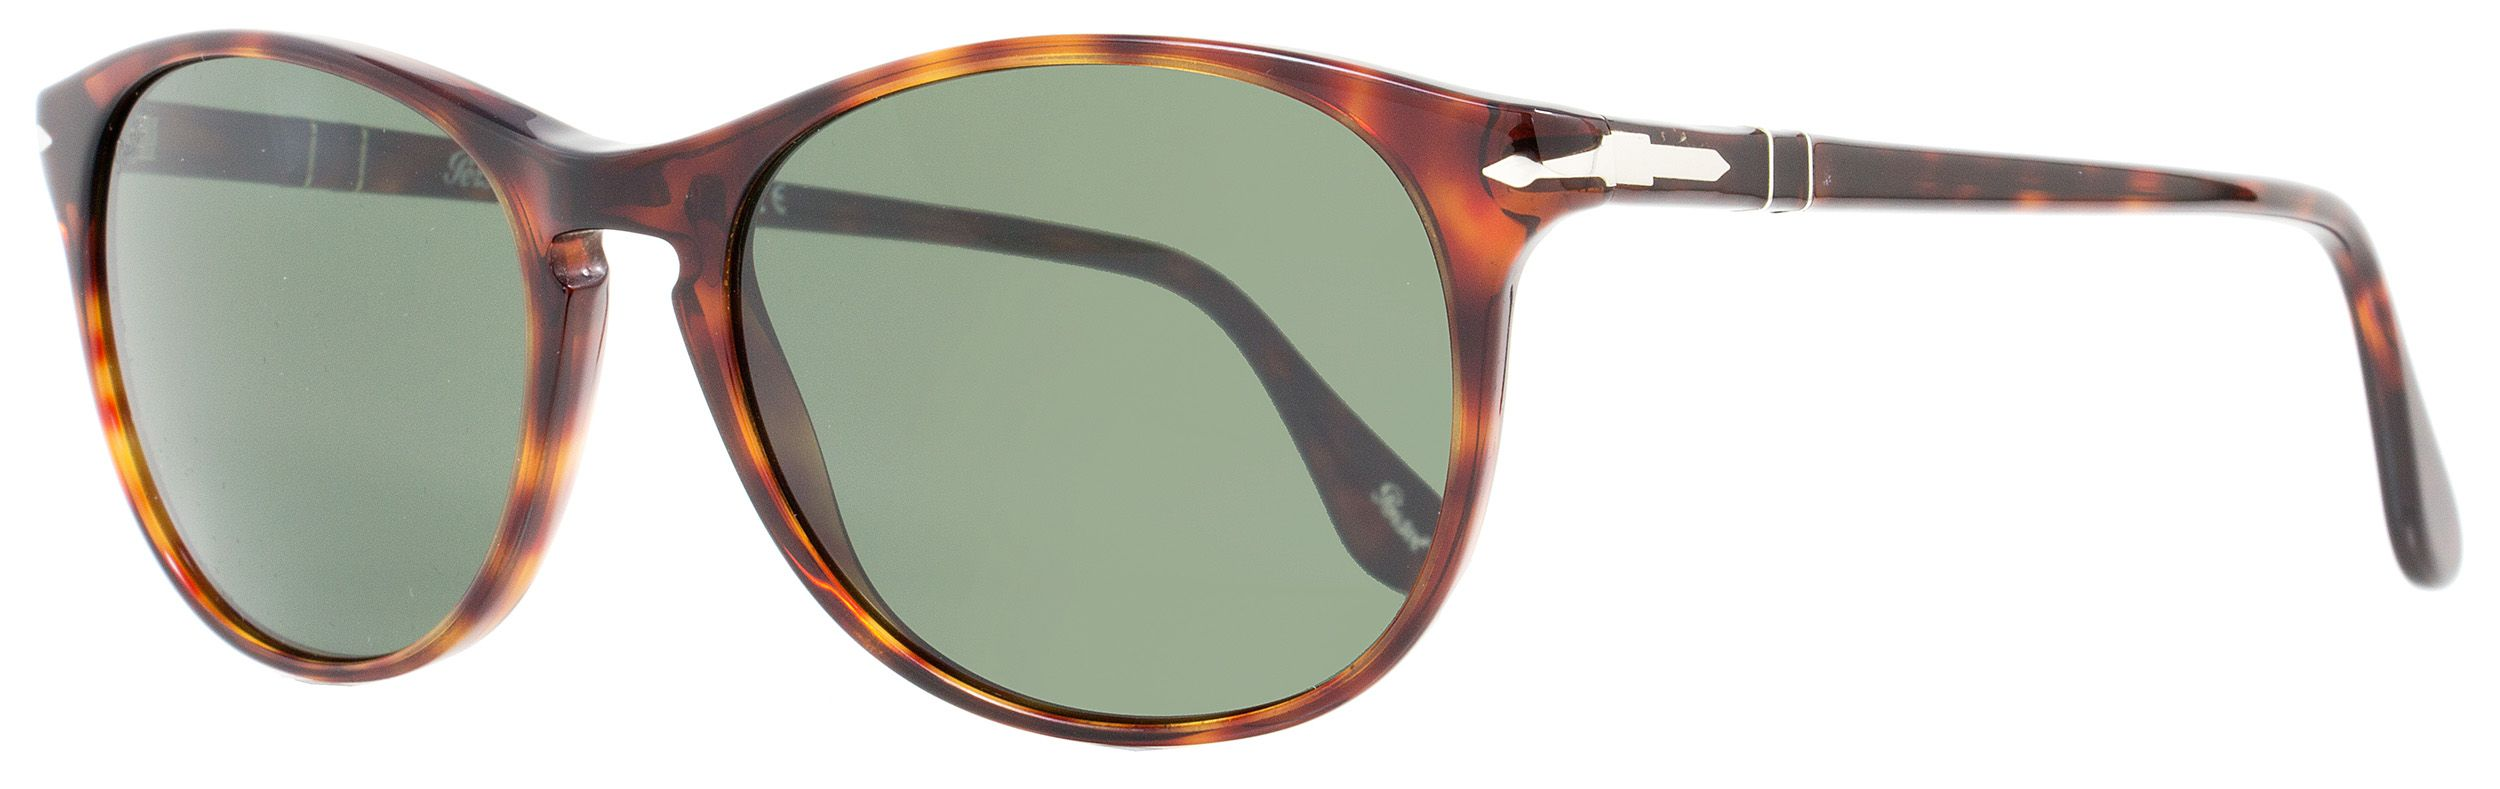 374c1c55af7db PERSOL PERSOL OVAL SUNGLASSES PO3042S 24 31 SIZE  54MM HAVANA.  persol